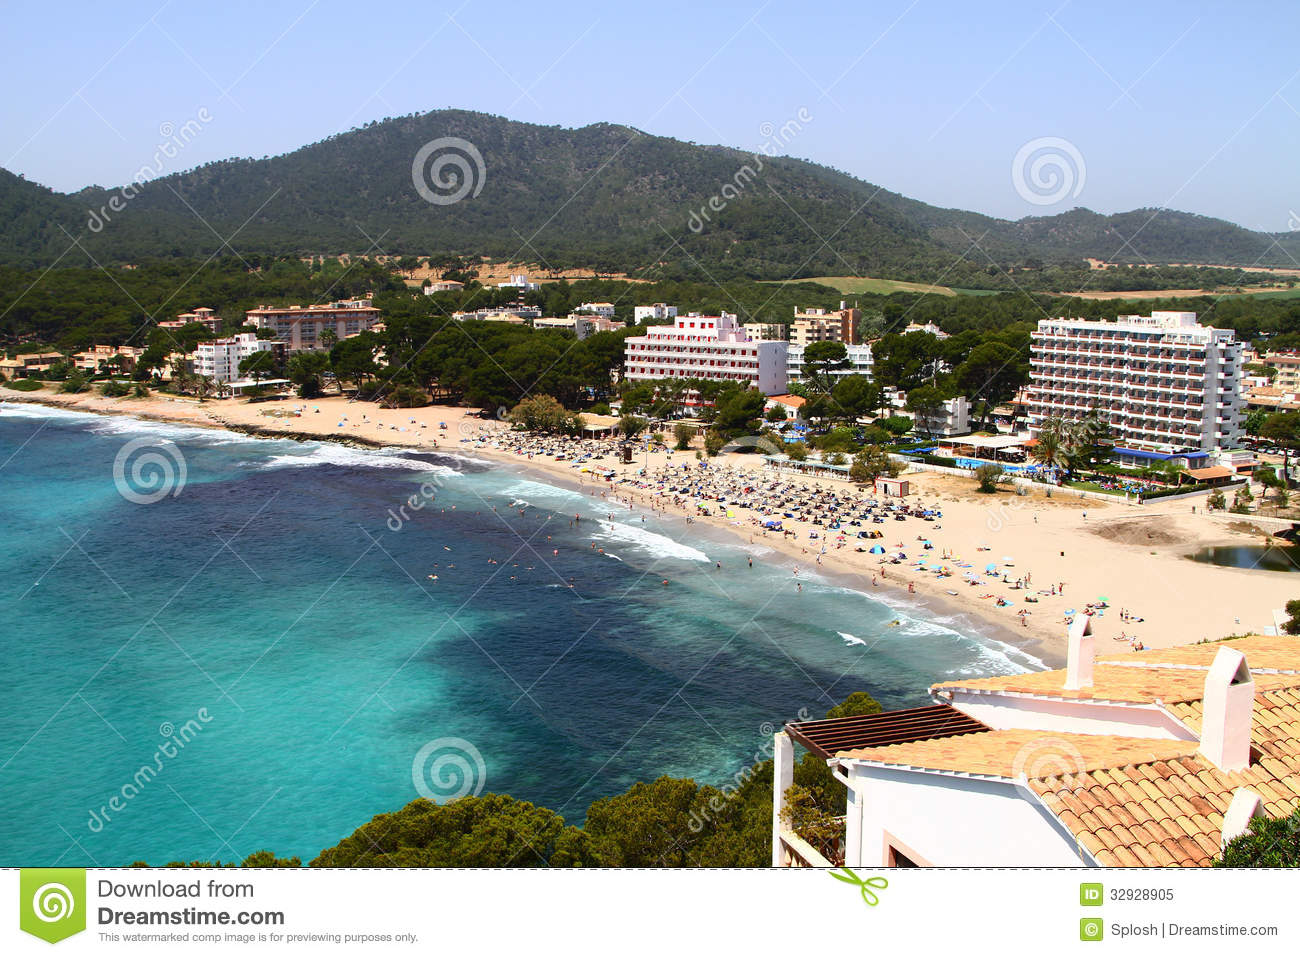 resorts in spain royalty free stock photo image